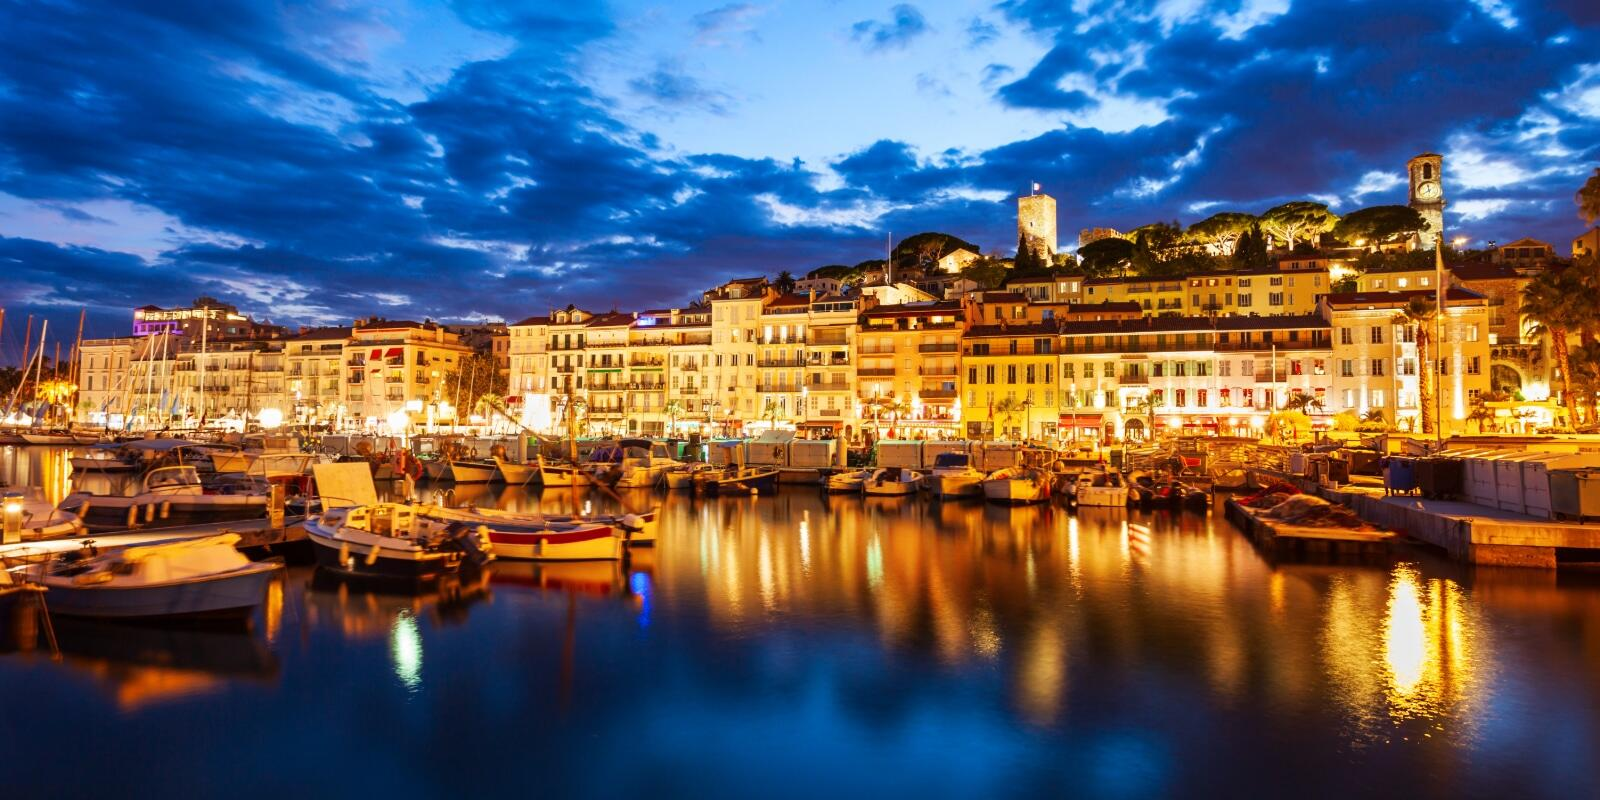 Week on the French Riviera on a dream boat